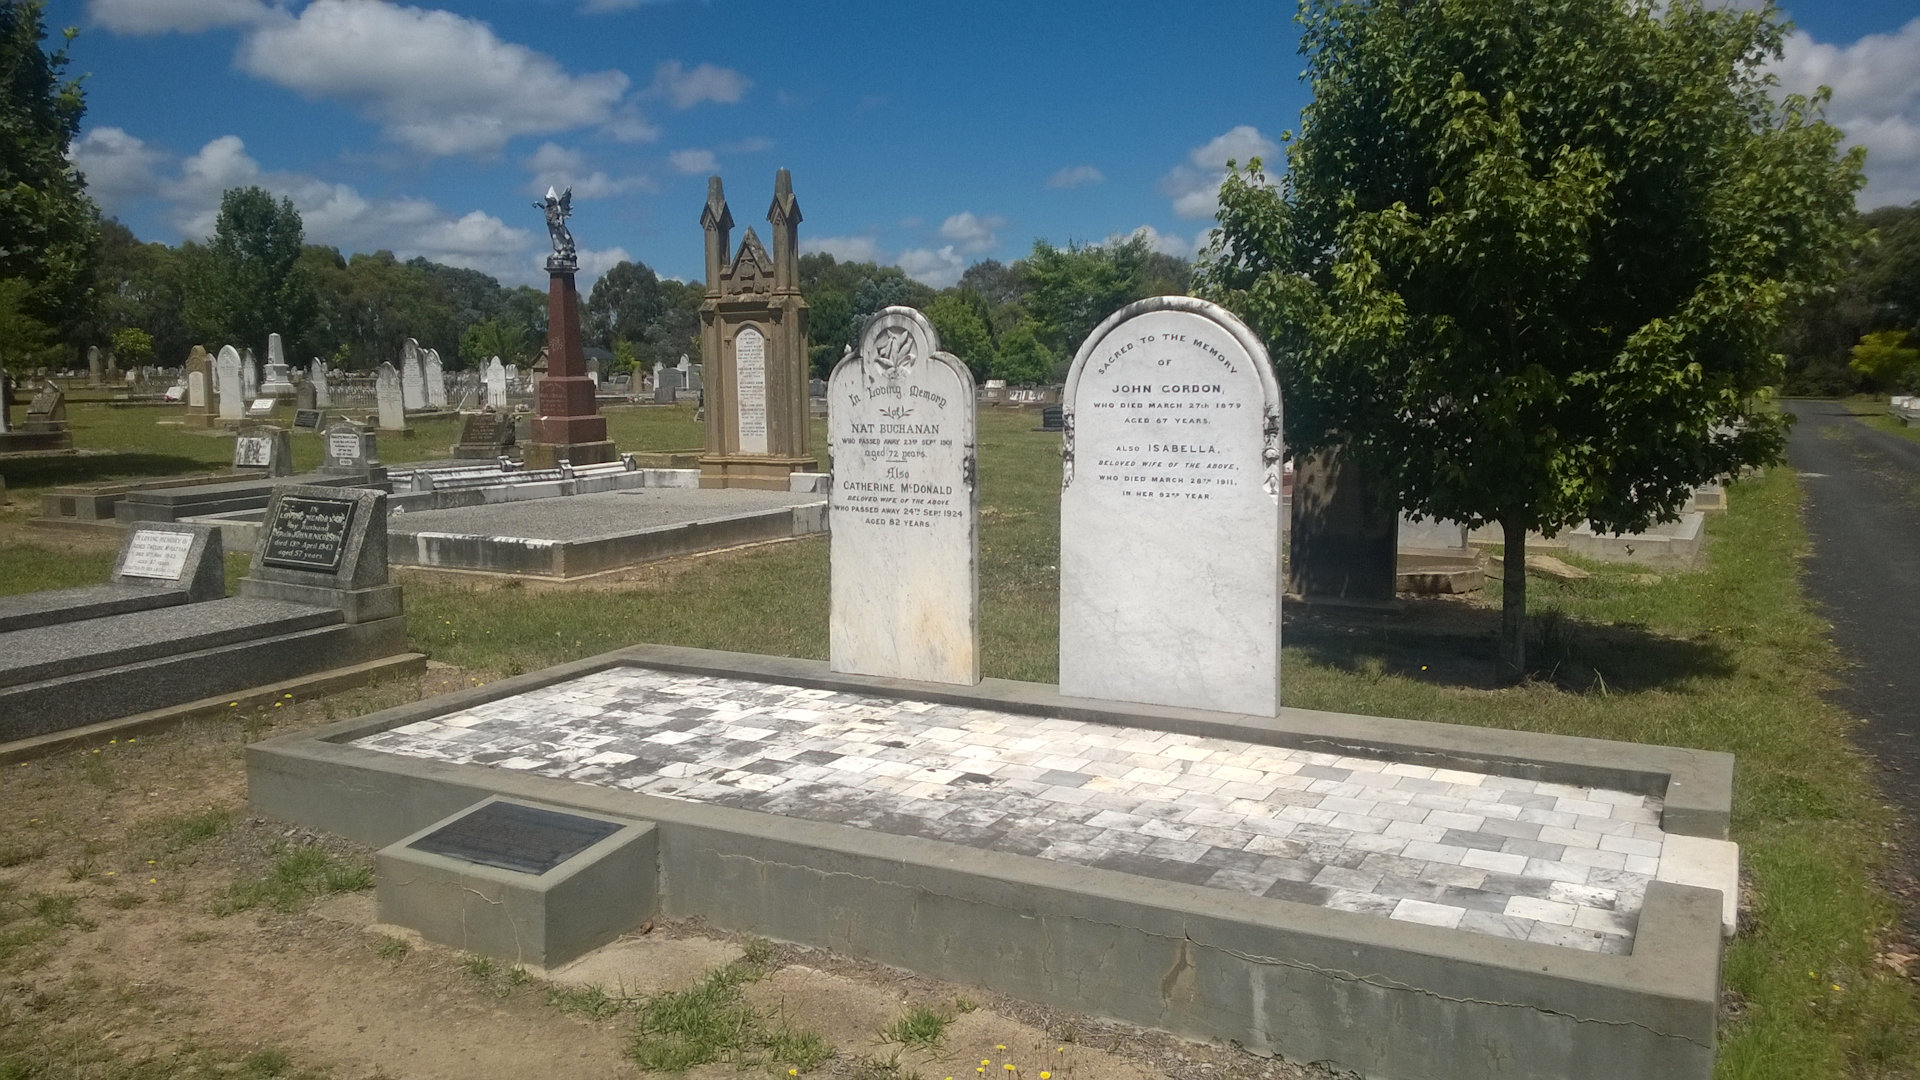 Nat Bachanan's Grave is in Walcha NSW, he was a pastoralist, explorer, and pioneer in Australia